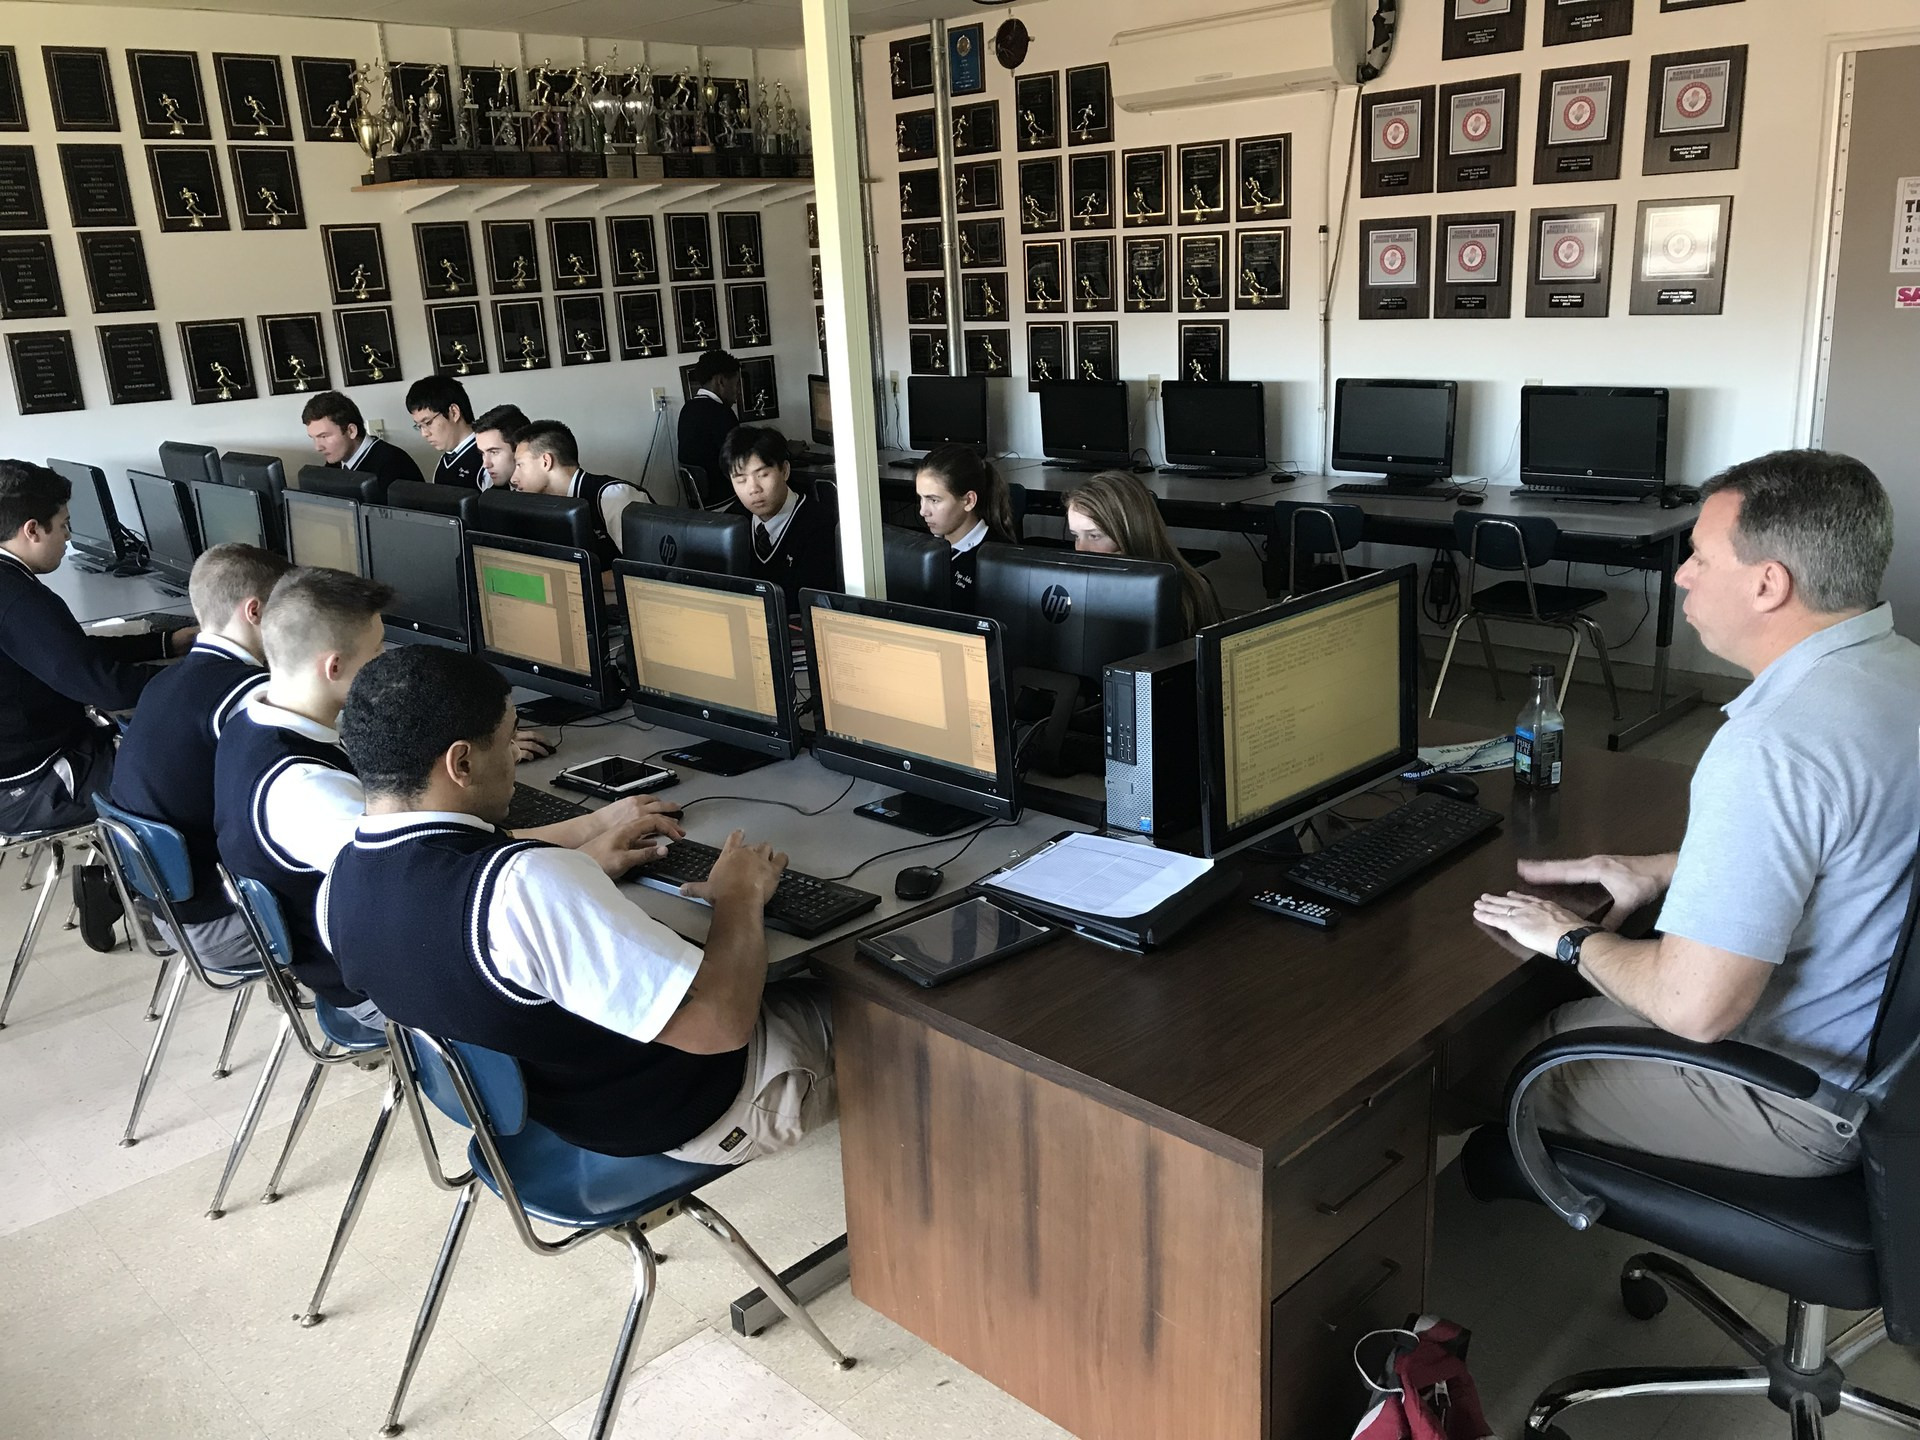 Students working in Computer Science